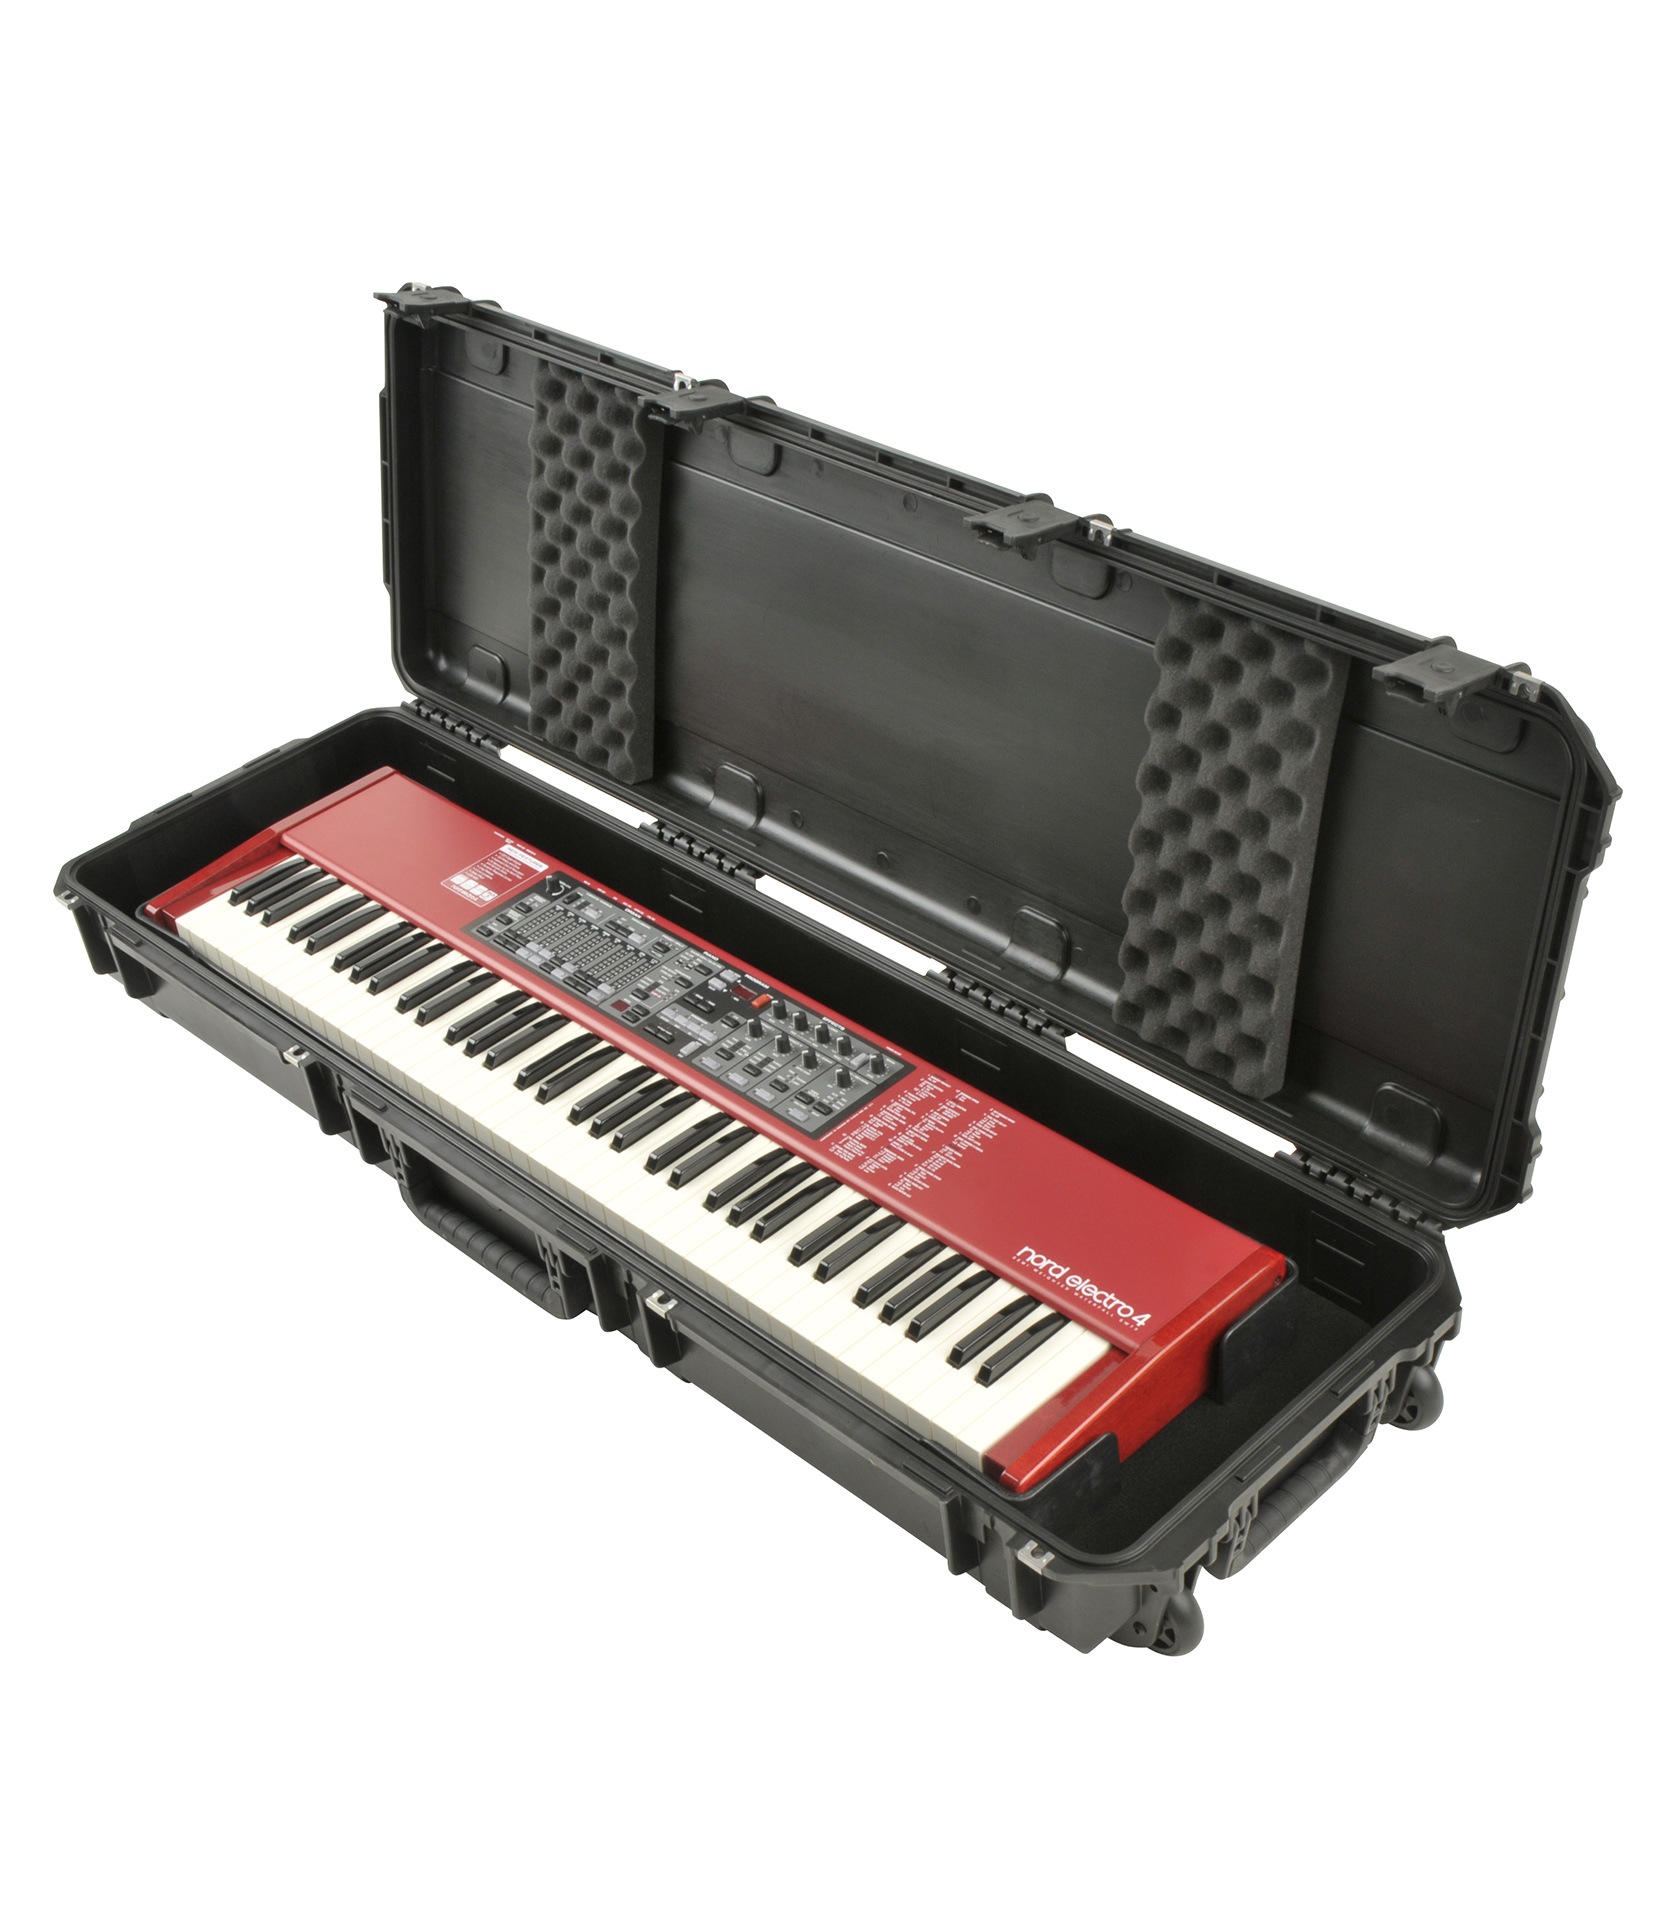 Melody House Musical Instruments Store - 3I 5014 KBD Injection Molded Waterproof 76 Note K